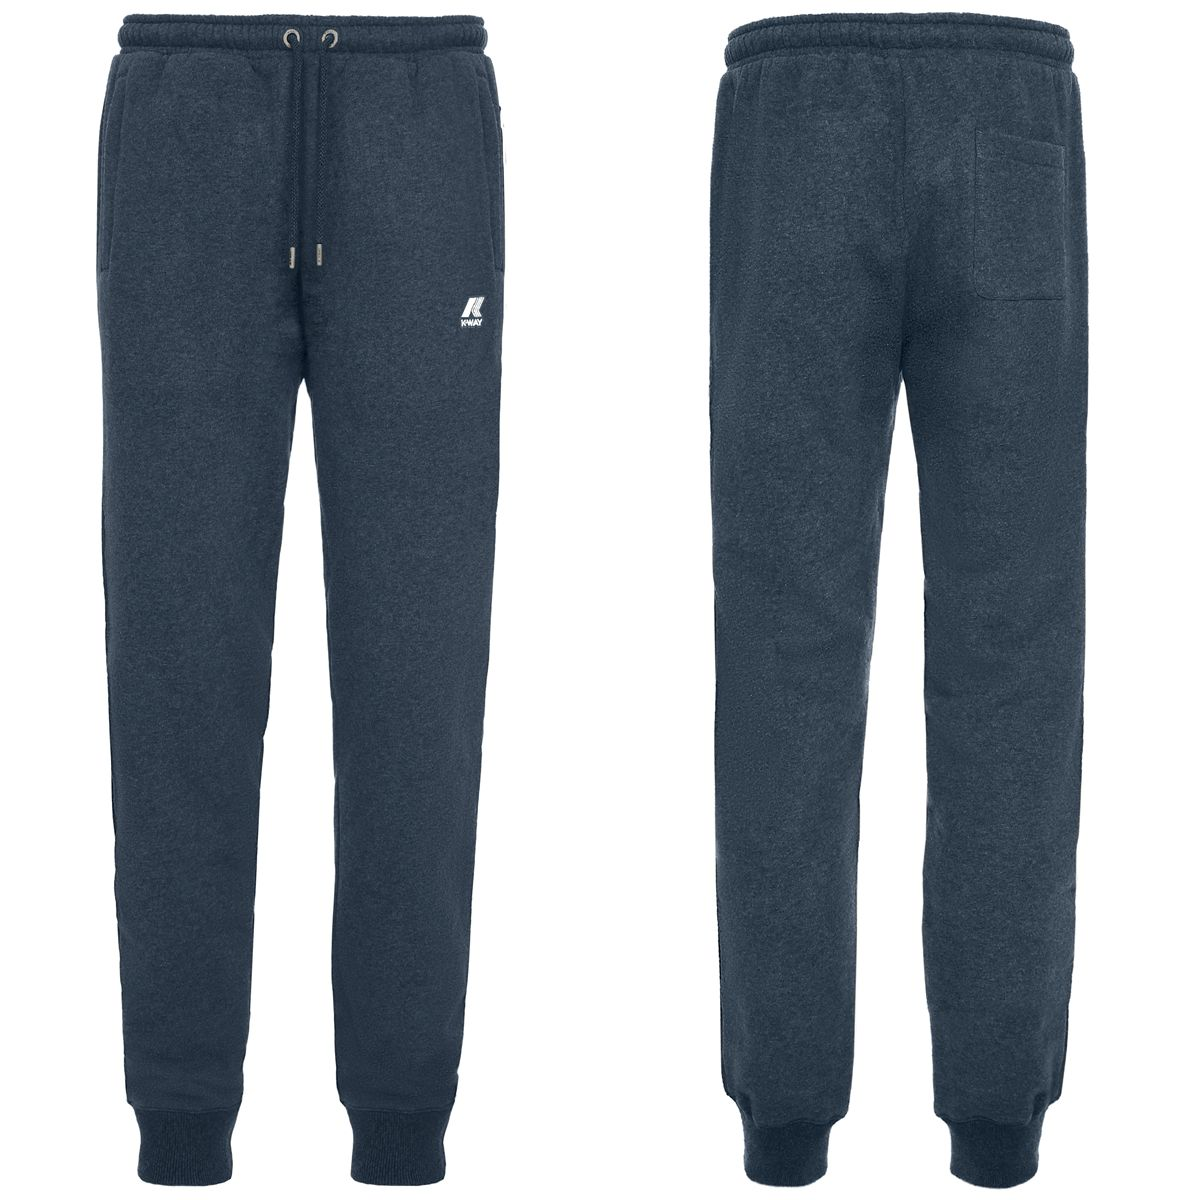 Pantaloni K-way uomo MICK FLEECE-K007GG0